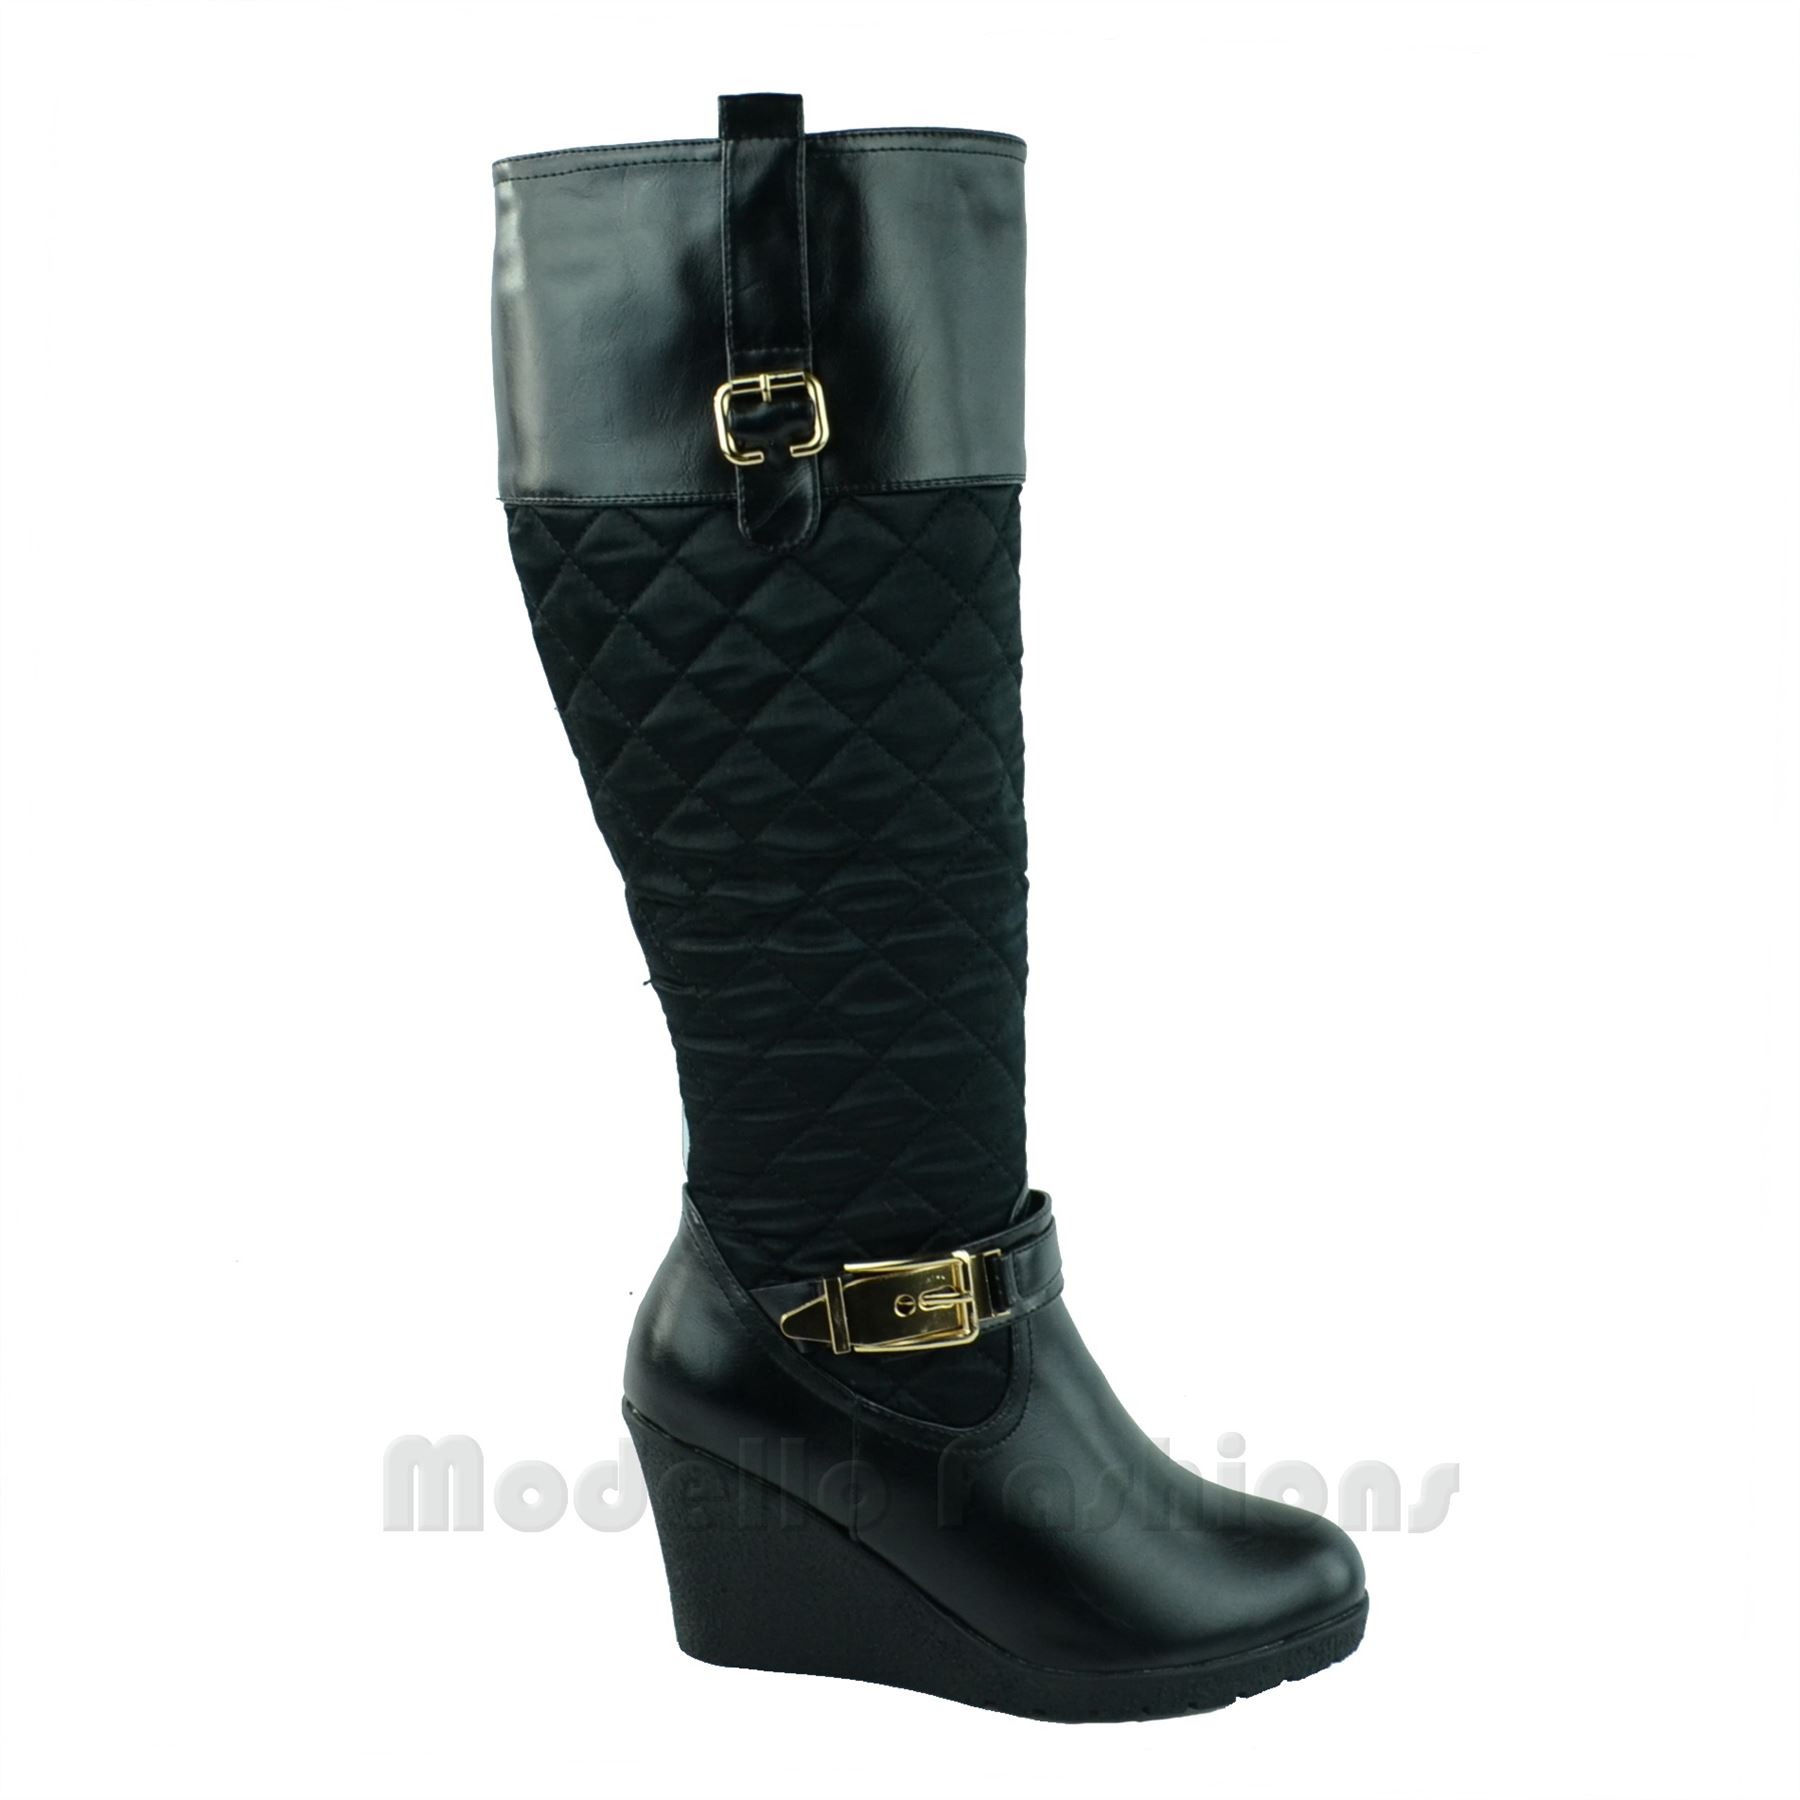 new womens wedge heel mid calf quilted gold buckle